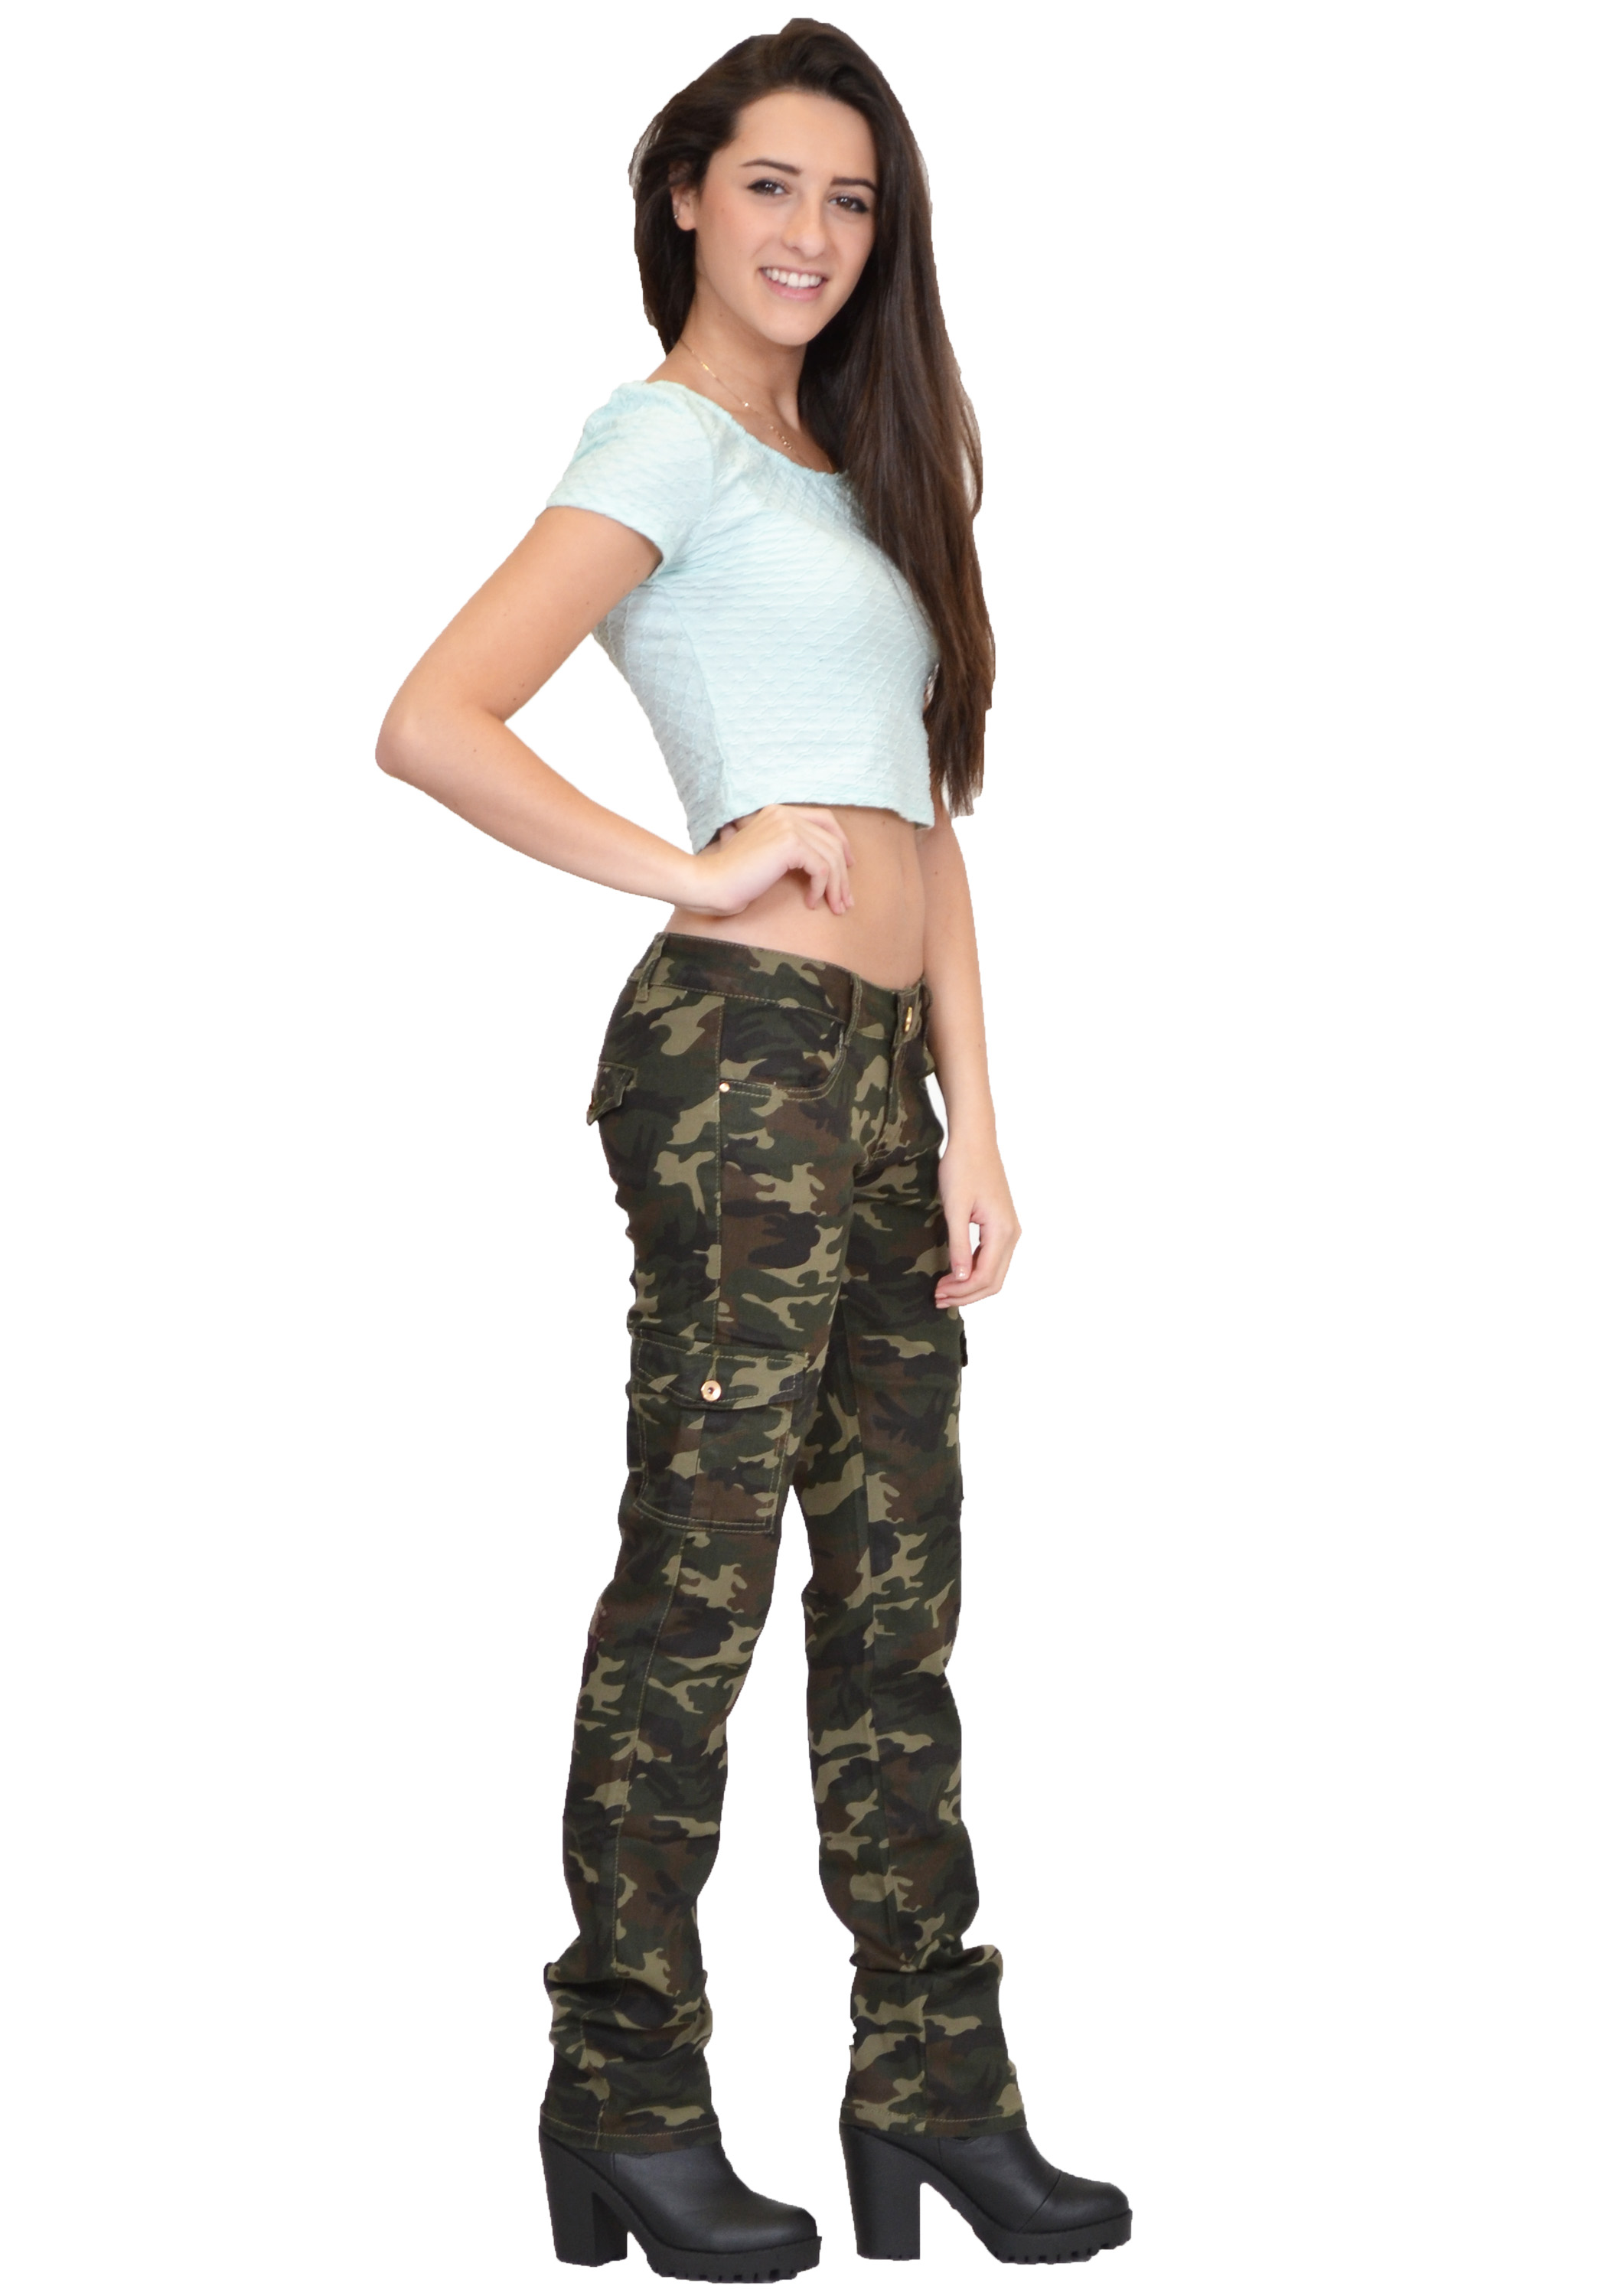 Fantastic  Womens Army Green Camouflage Wide Combat Trousers Cargo Jeans Pants